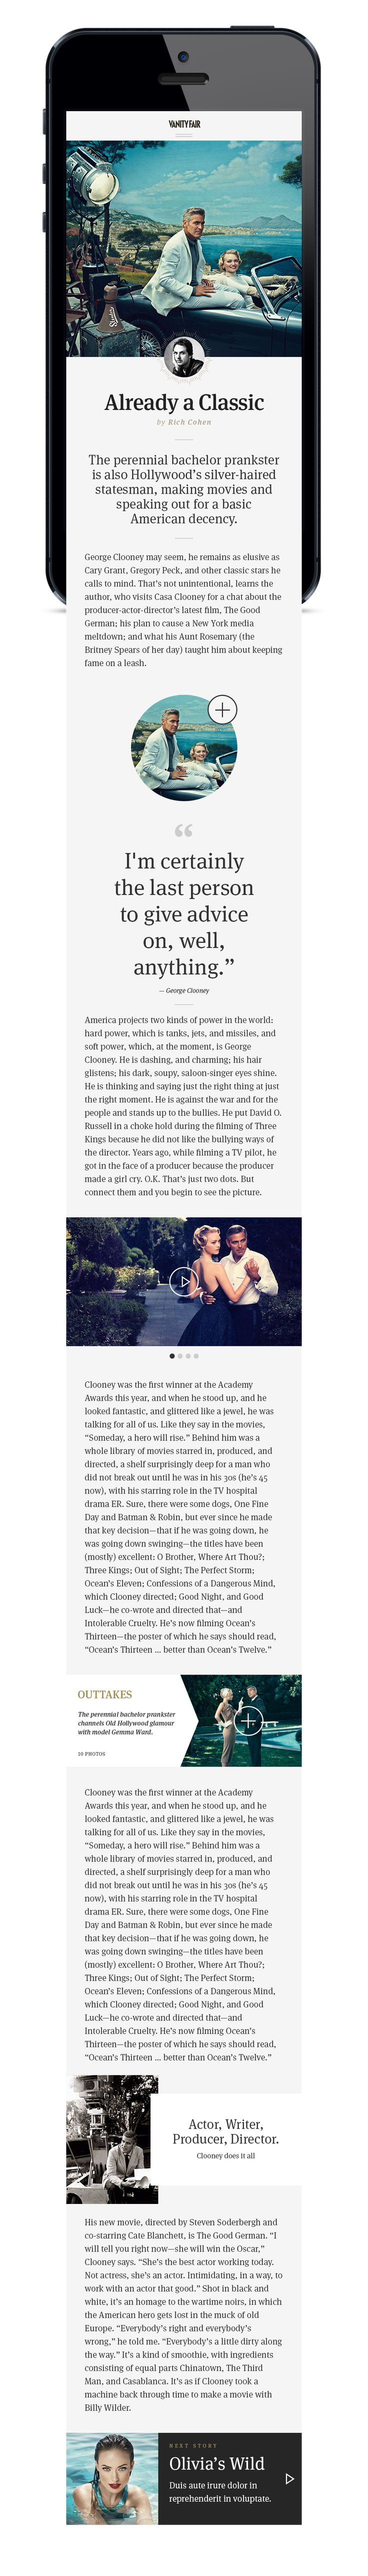 """Vanity Fair *** """"I love Vanity Fair. They employ some of the worlds finest talent. Their content is fantastic. Their mobile site however... quite shit actually. I wanted to just have some fun with it and give it a facelift."""" by Brijan, via Dribbble *** #web #mobile #design #dribbble"""